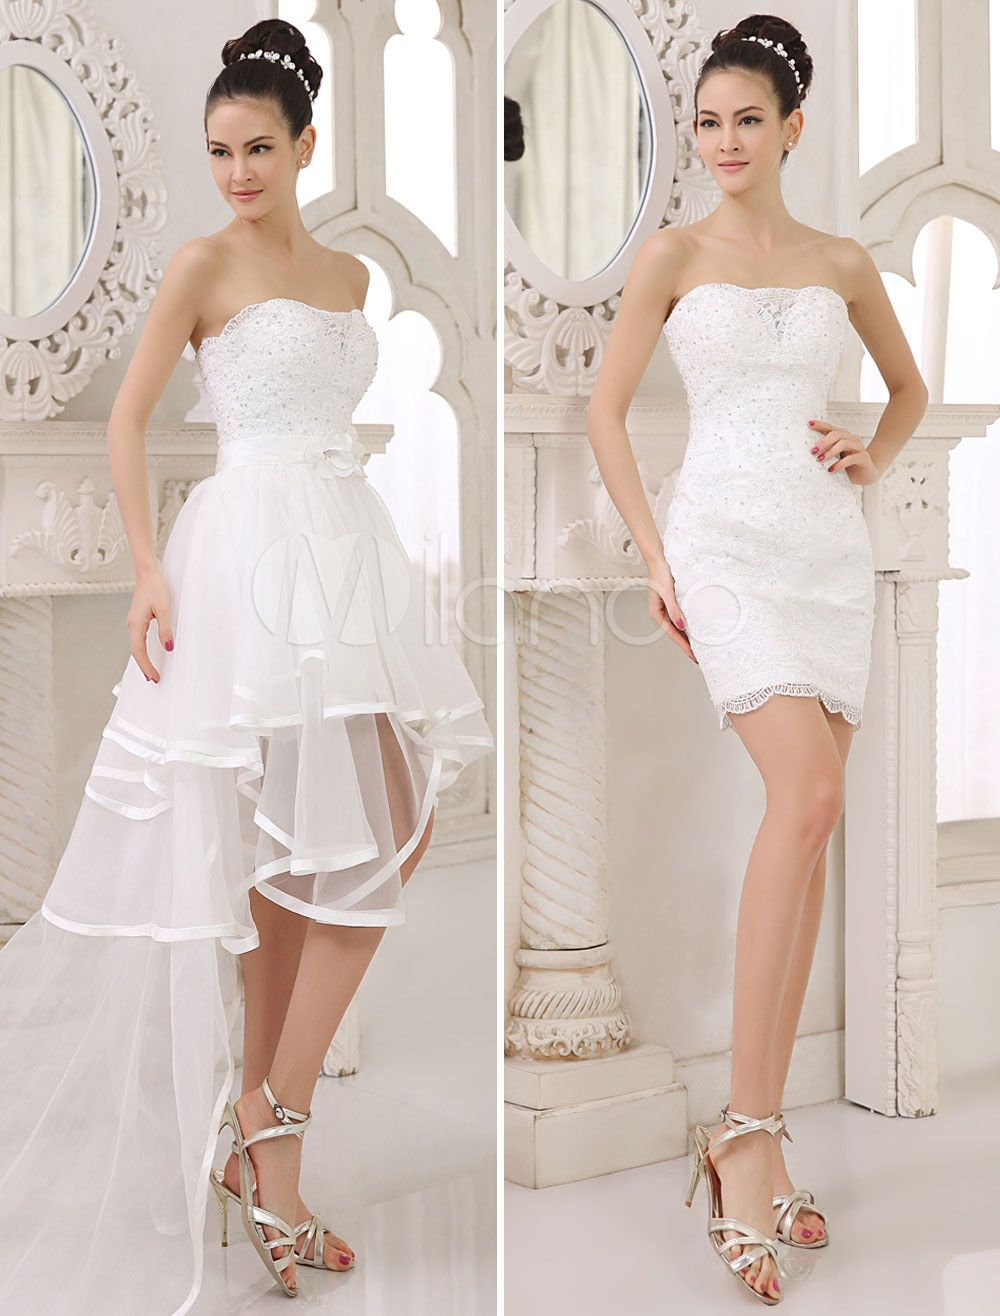 16dfe90e7db A-lien Strapless Two-In-One Wedding Dress with Panel Train in 2019 ...